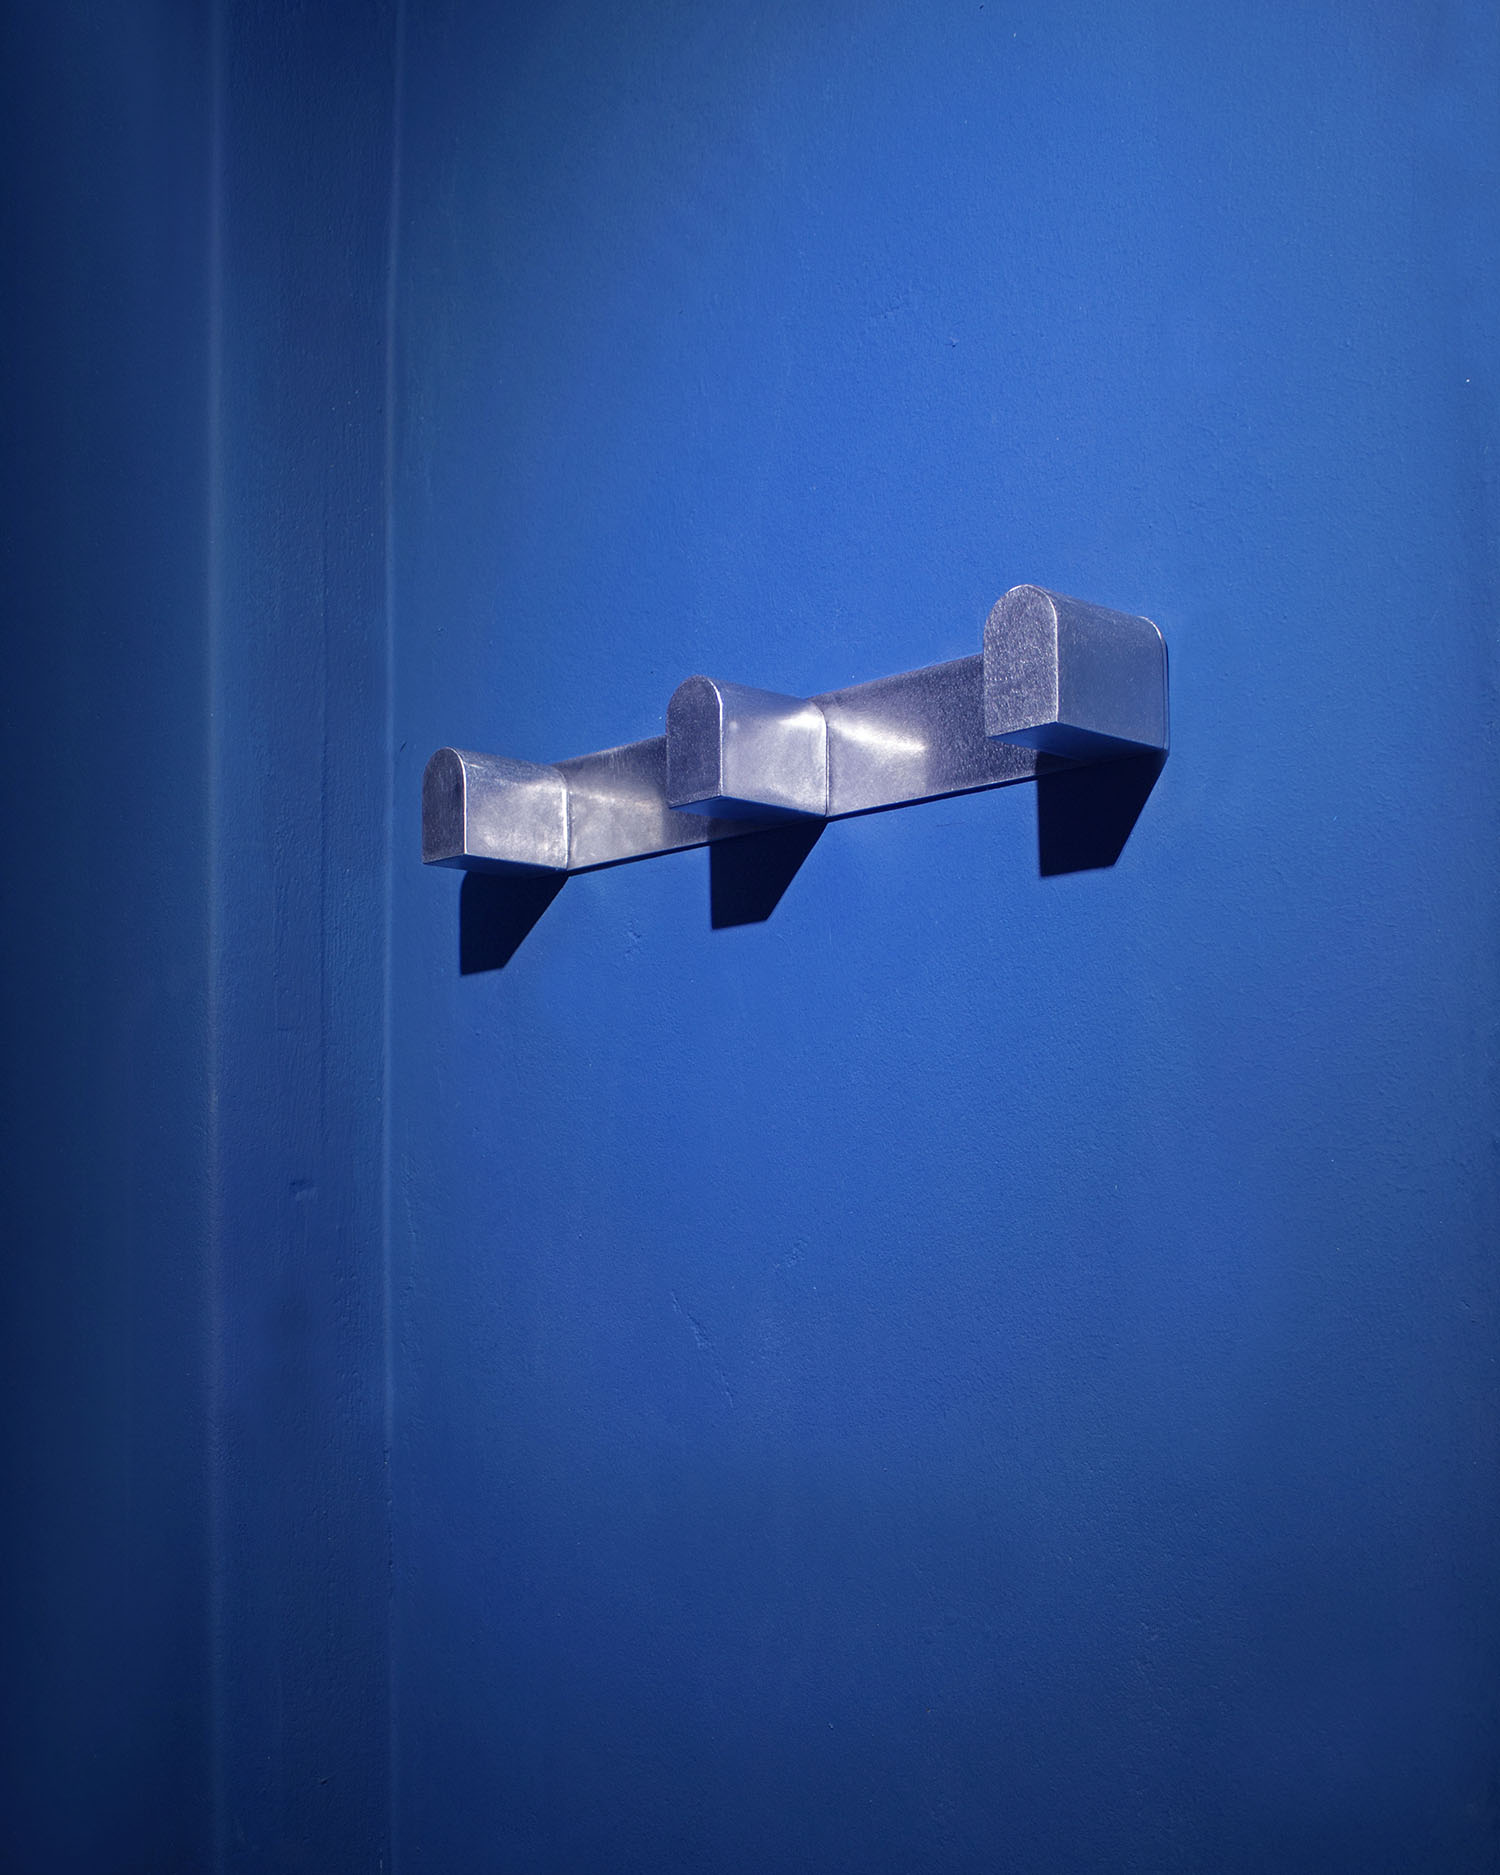 Untitled coat hook